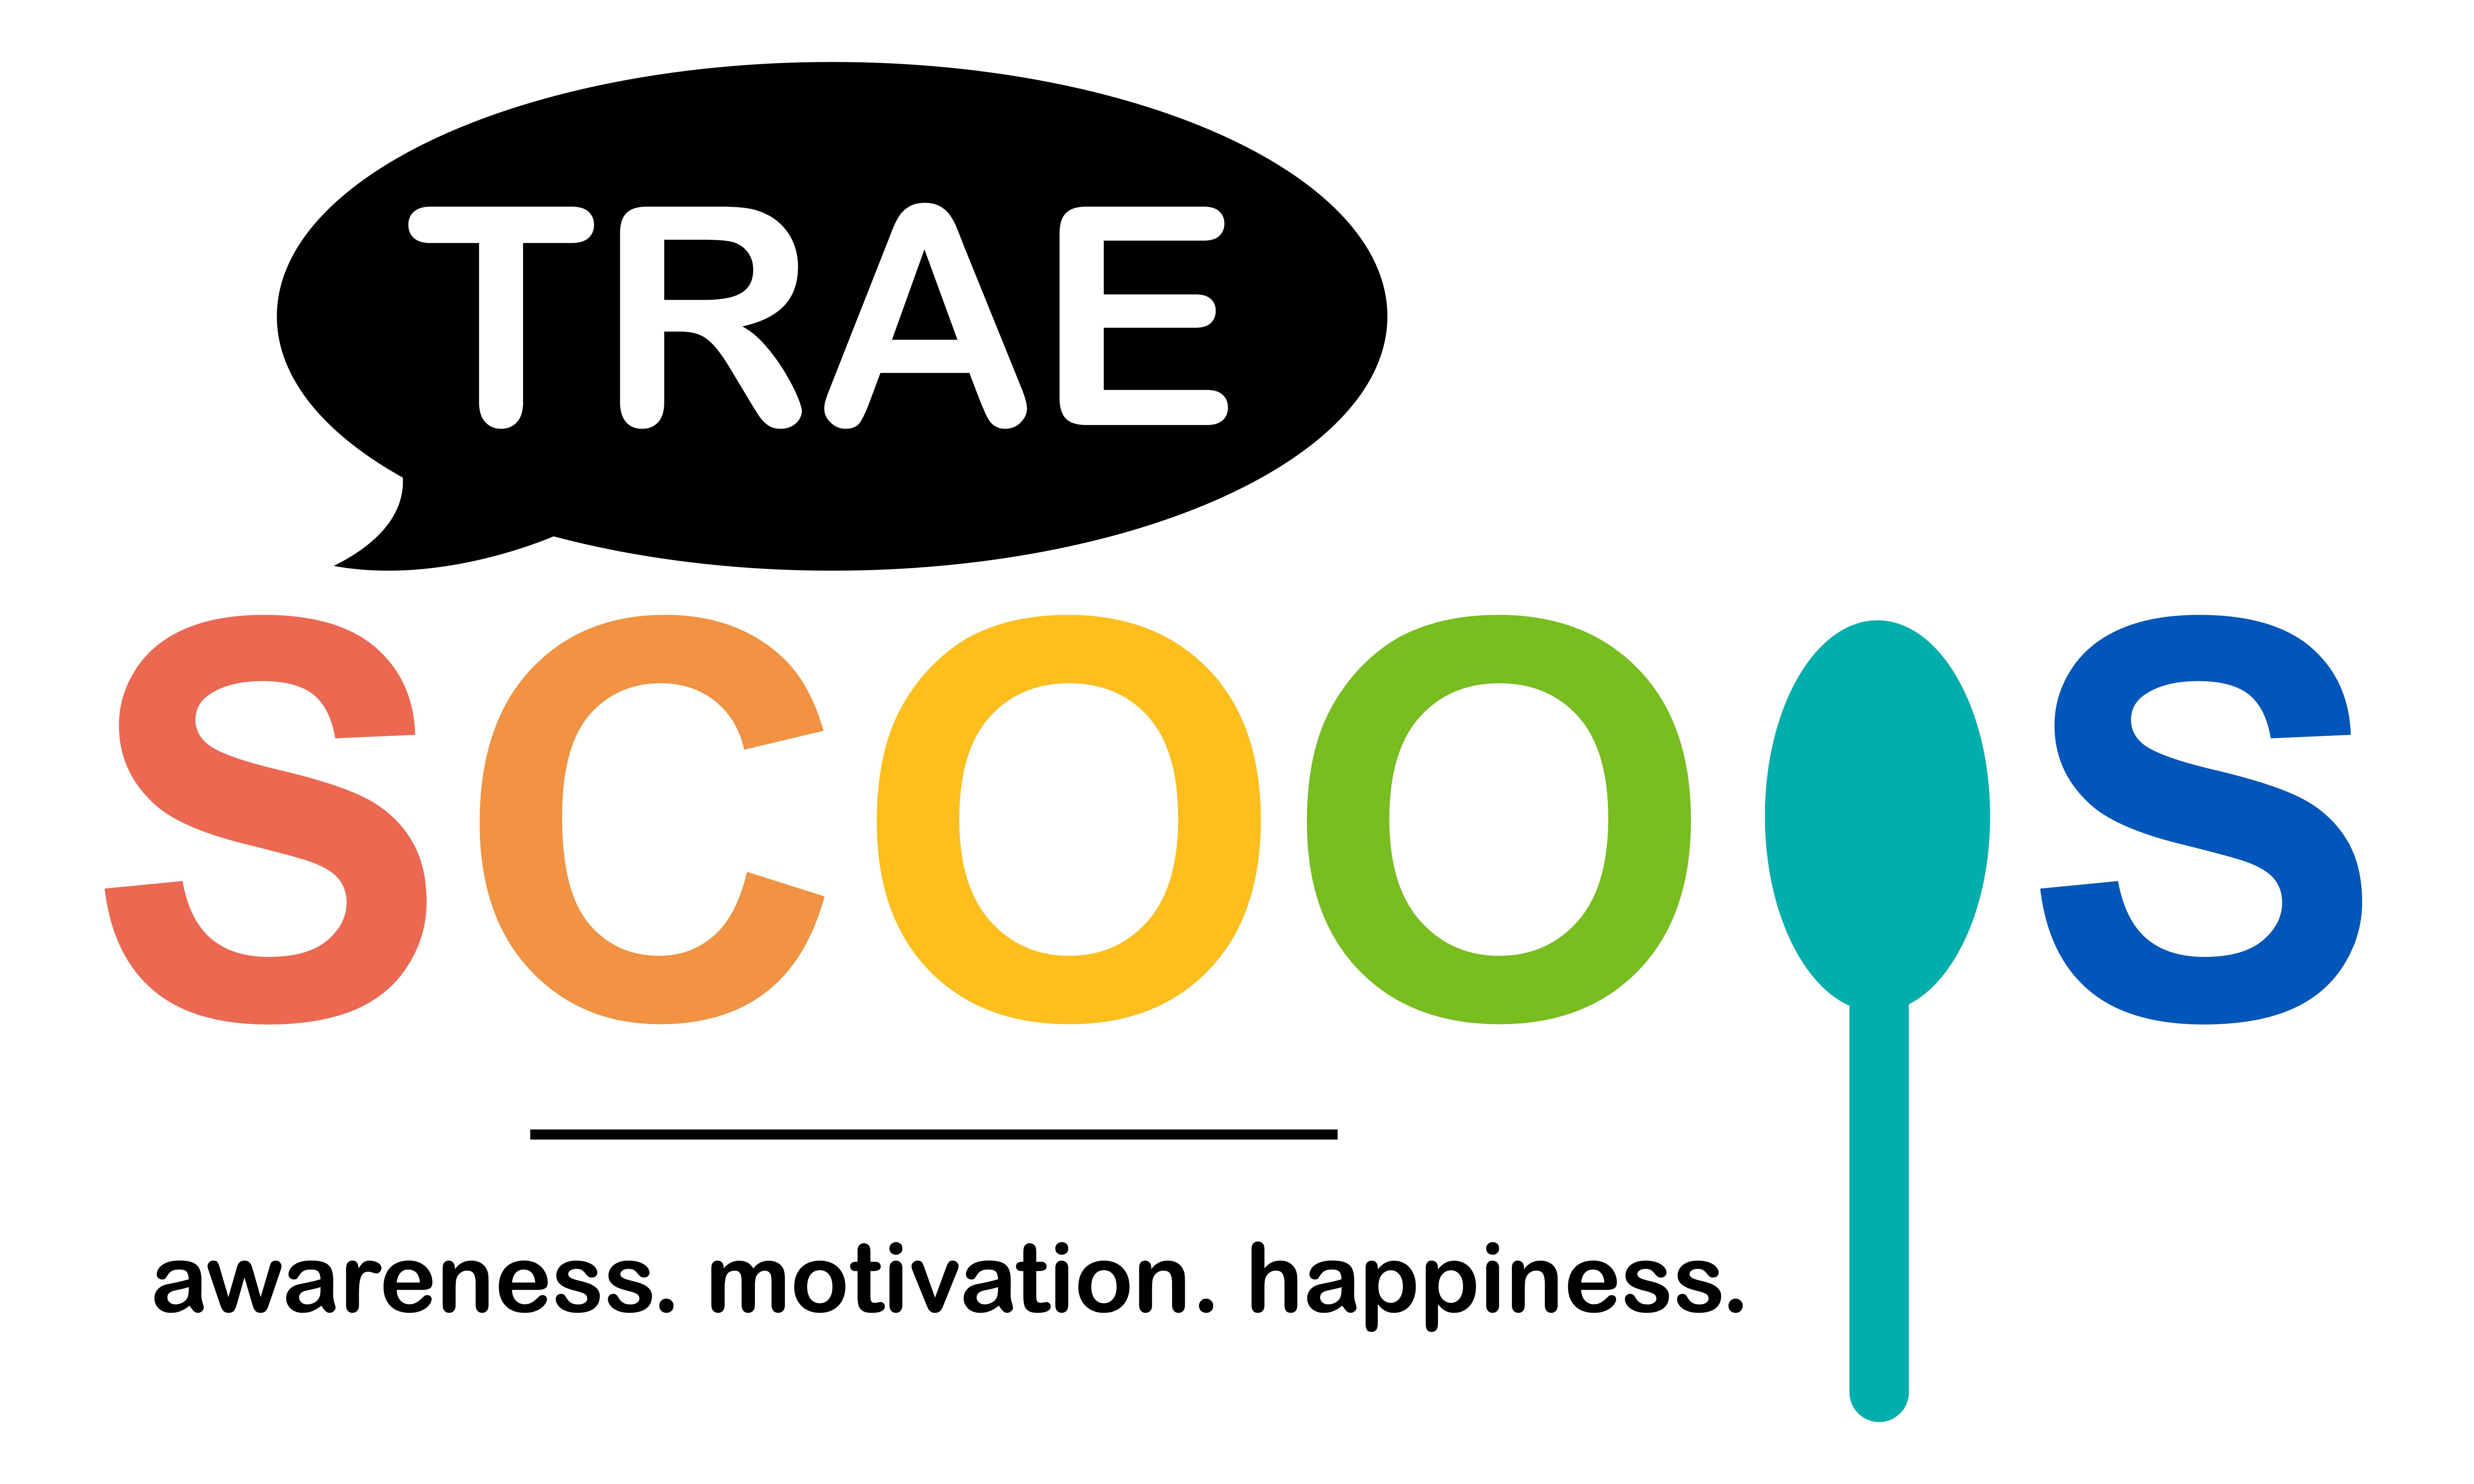 Trae-Scoops-full-color-01 copy